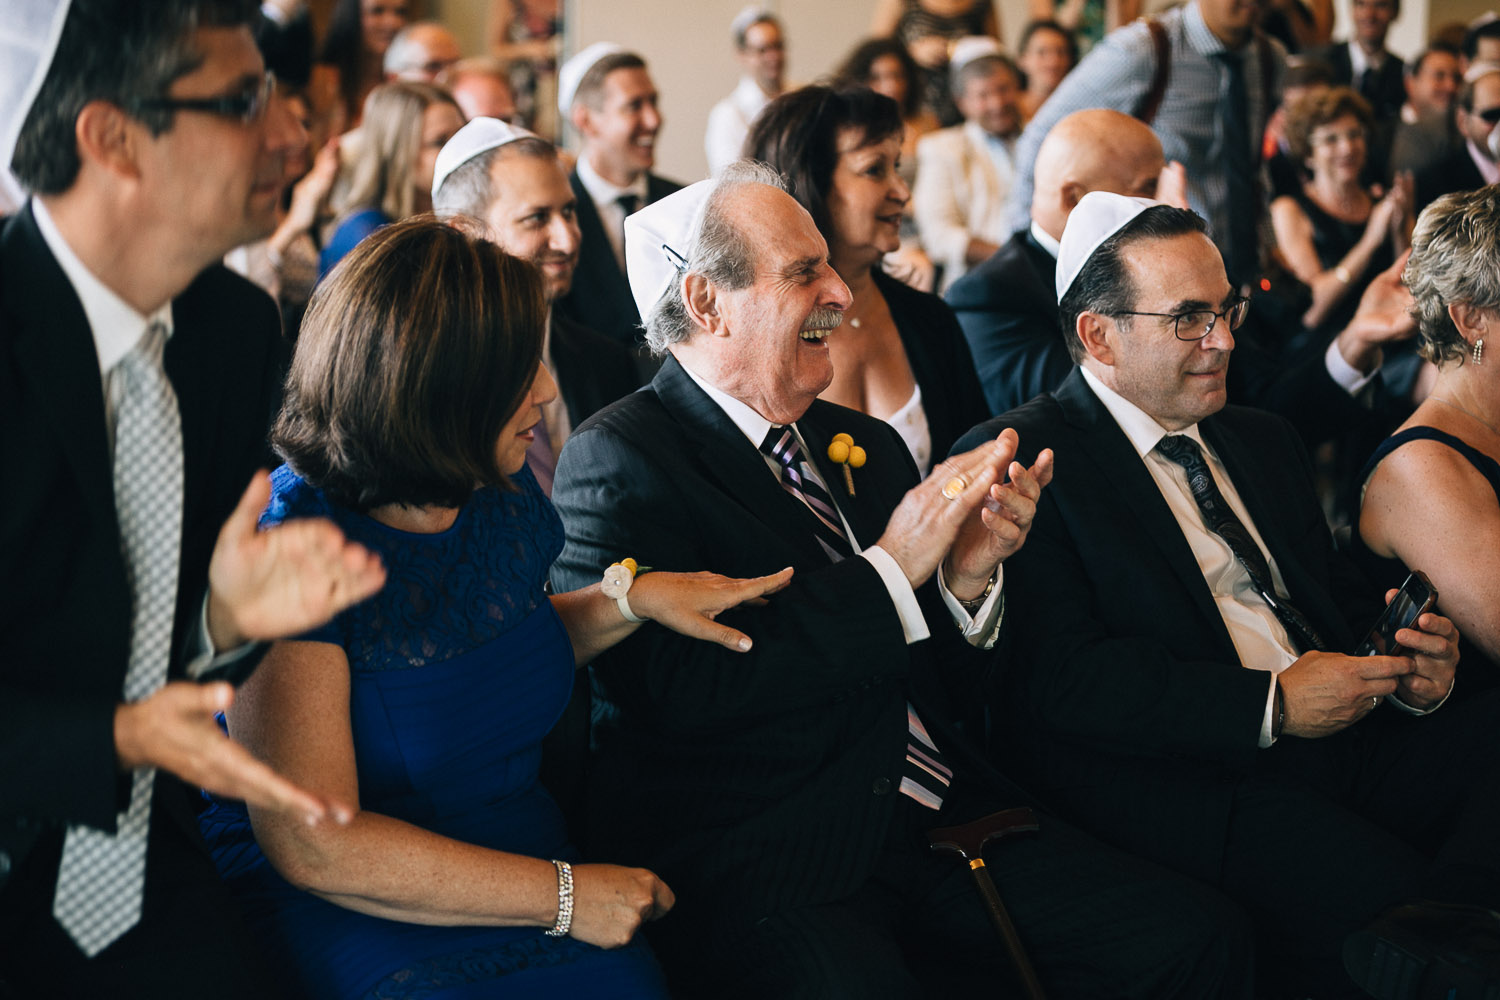 vancouver jewish wedding ceremony photography noyo creative